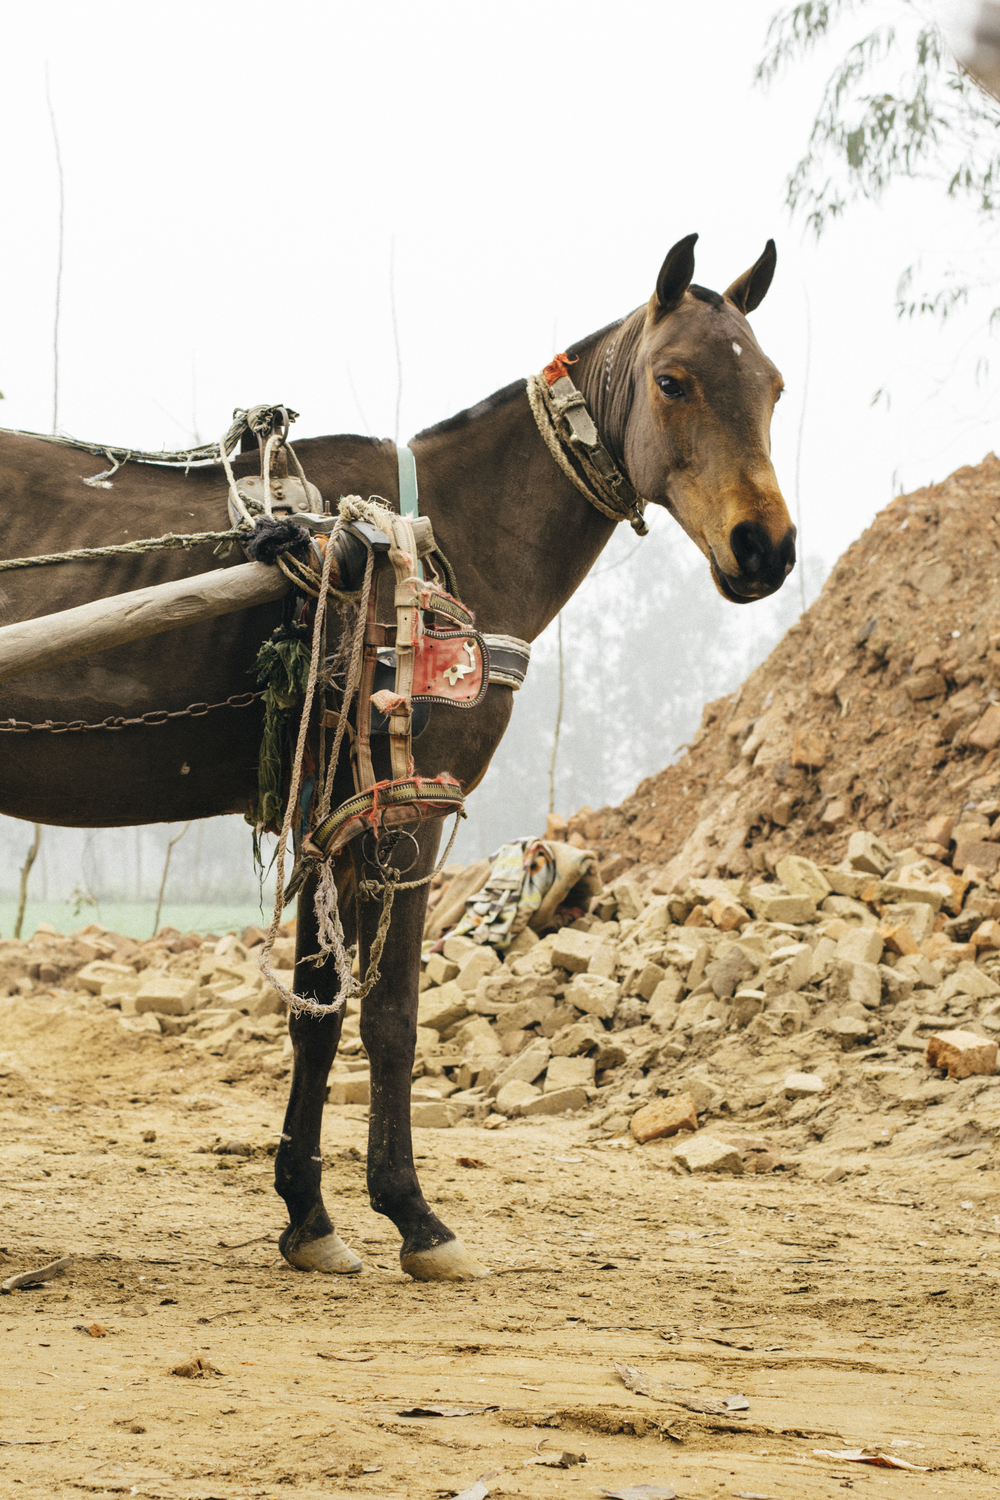 Working horse in the brick kilns, India